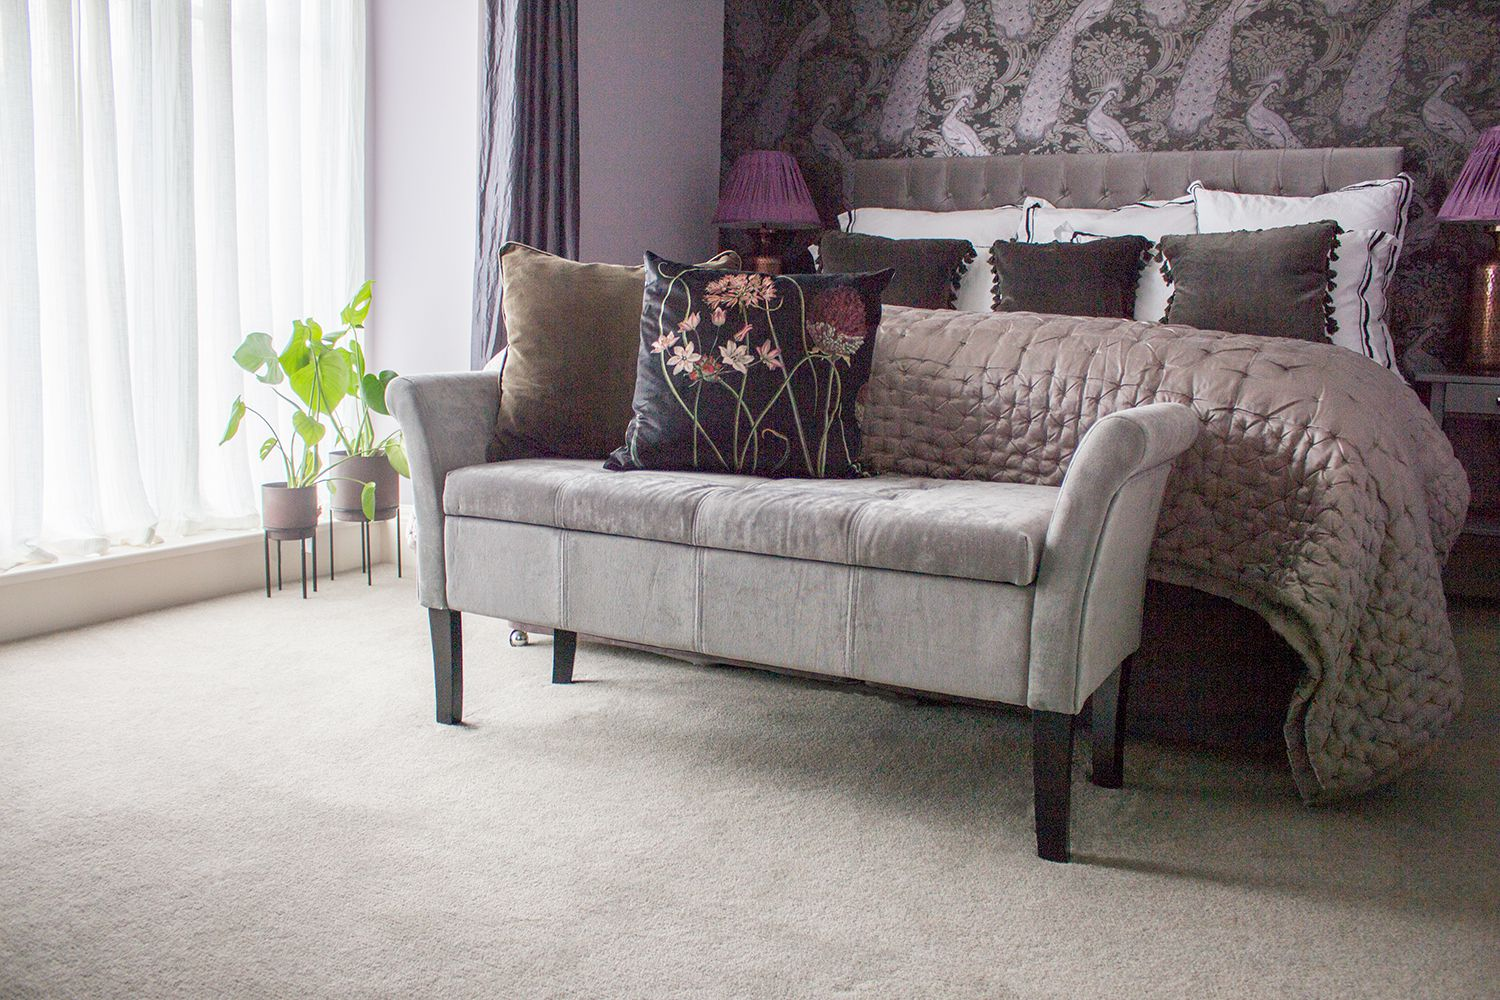 A view of the bed with the silk bedspread, and the grey velvet upholstered bench in front.